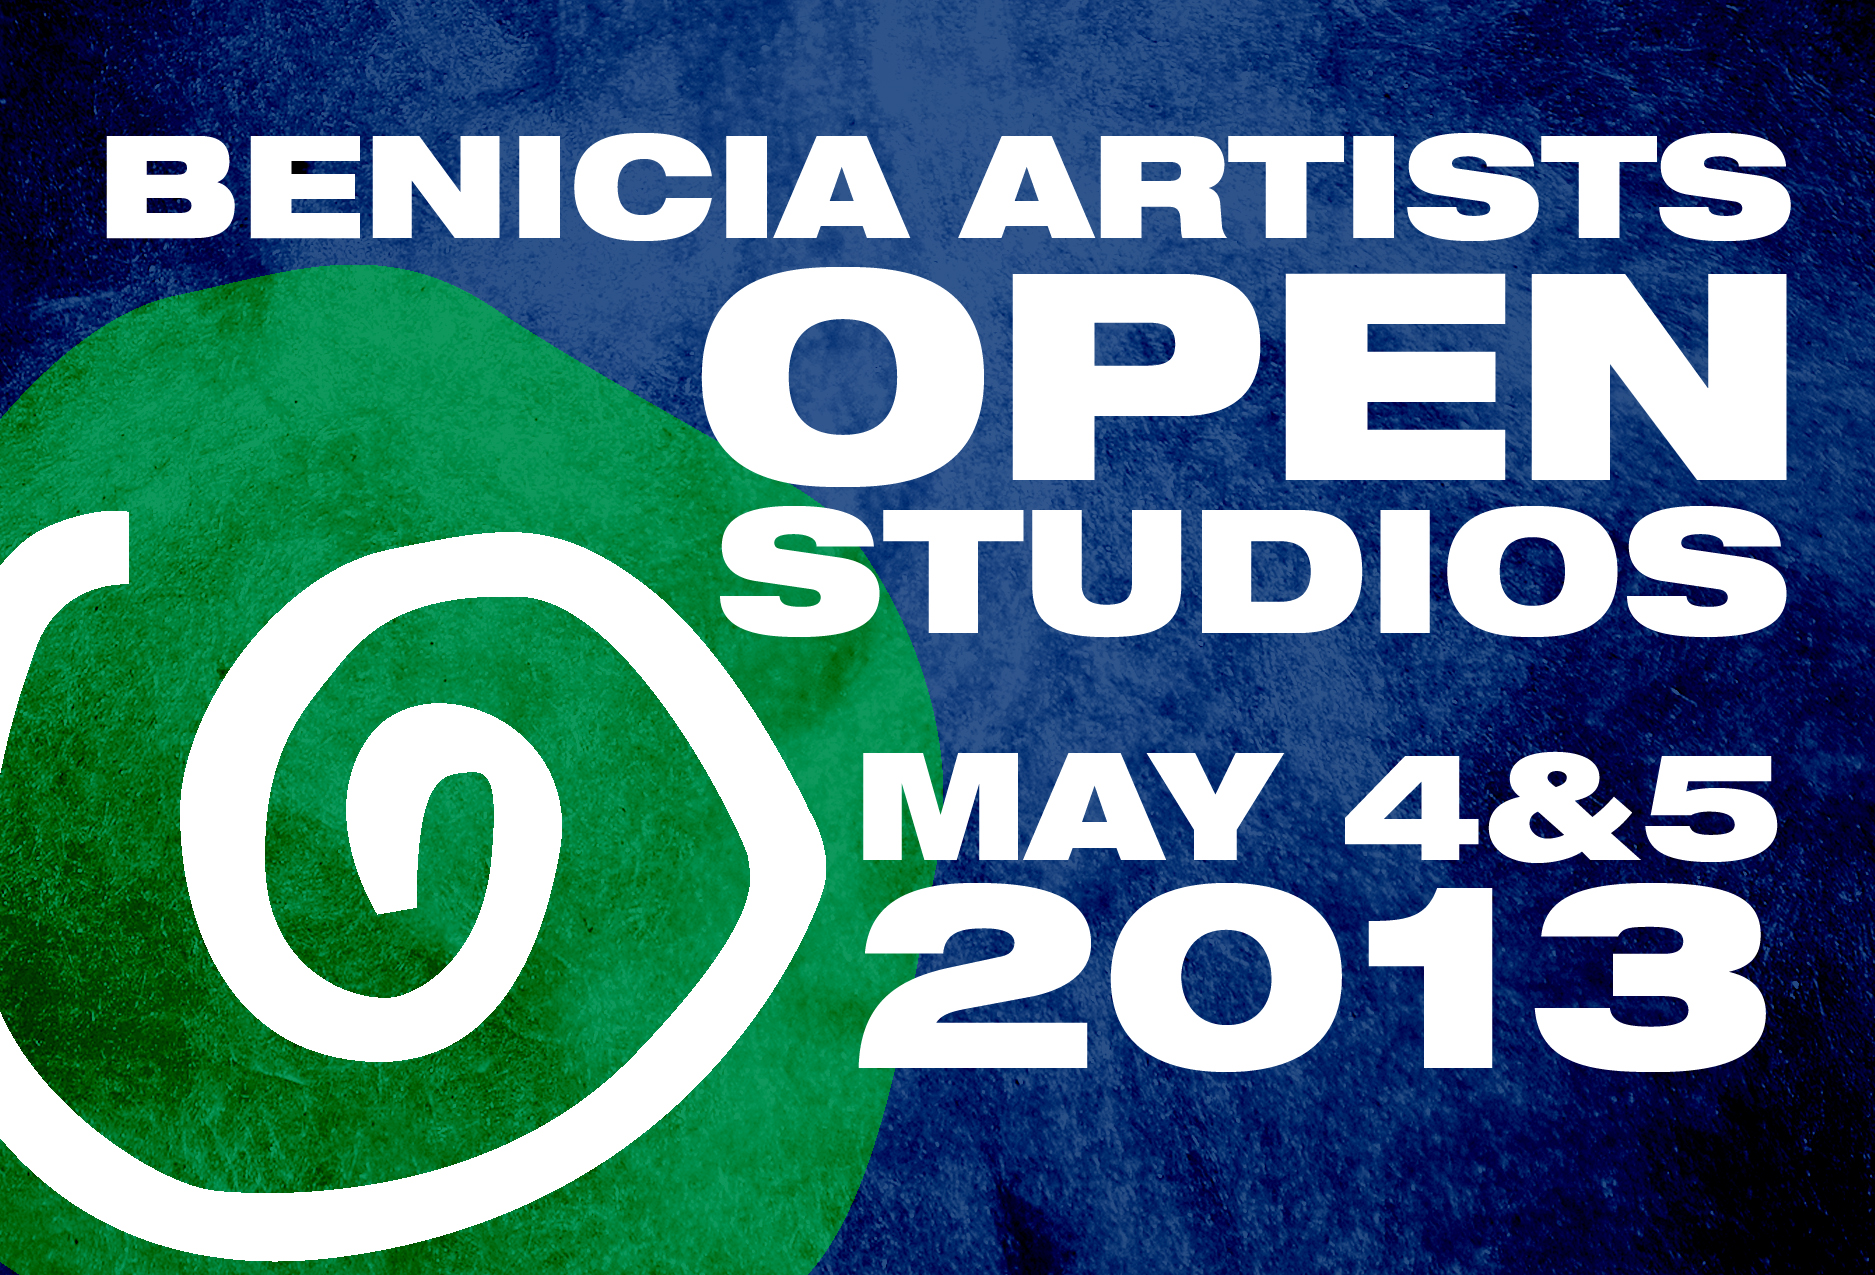 Benicia artists open studios may 4th and 5th 2013 arts benicia benicia artists open studios may 4th and 5th 2013 malvernweather Choice Image